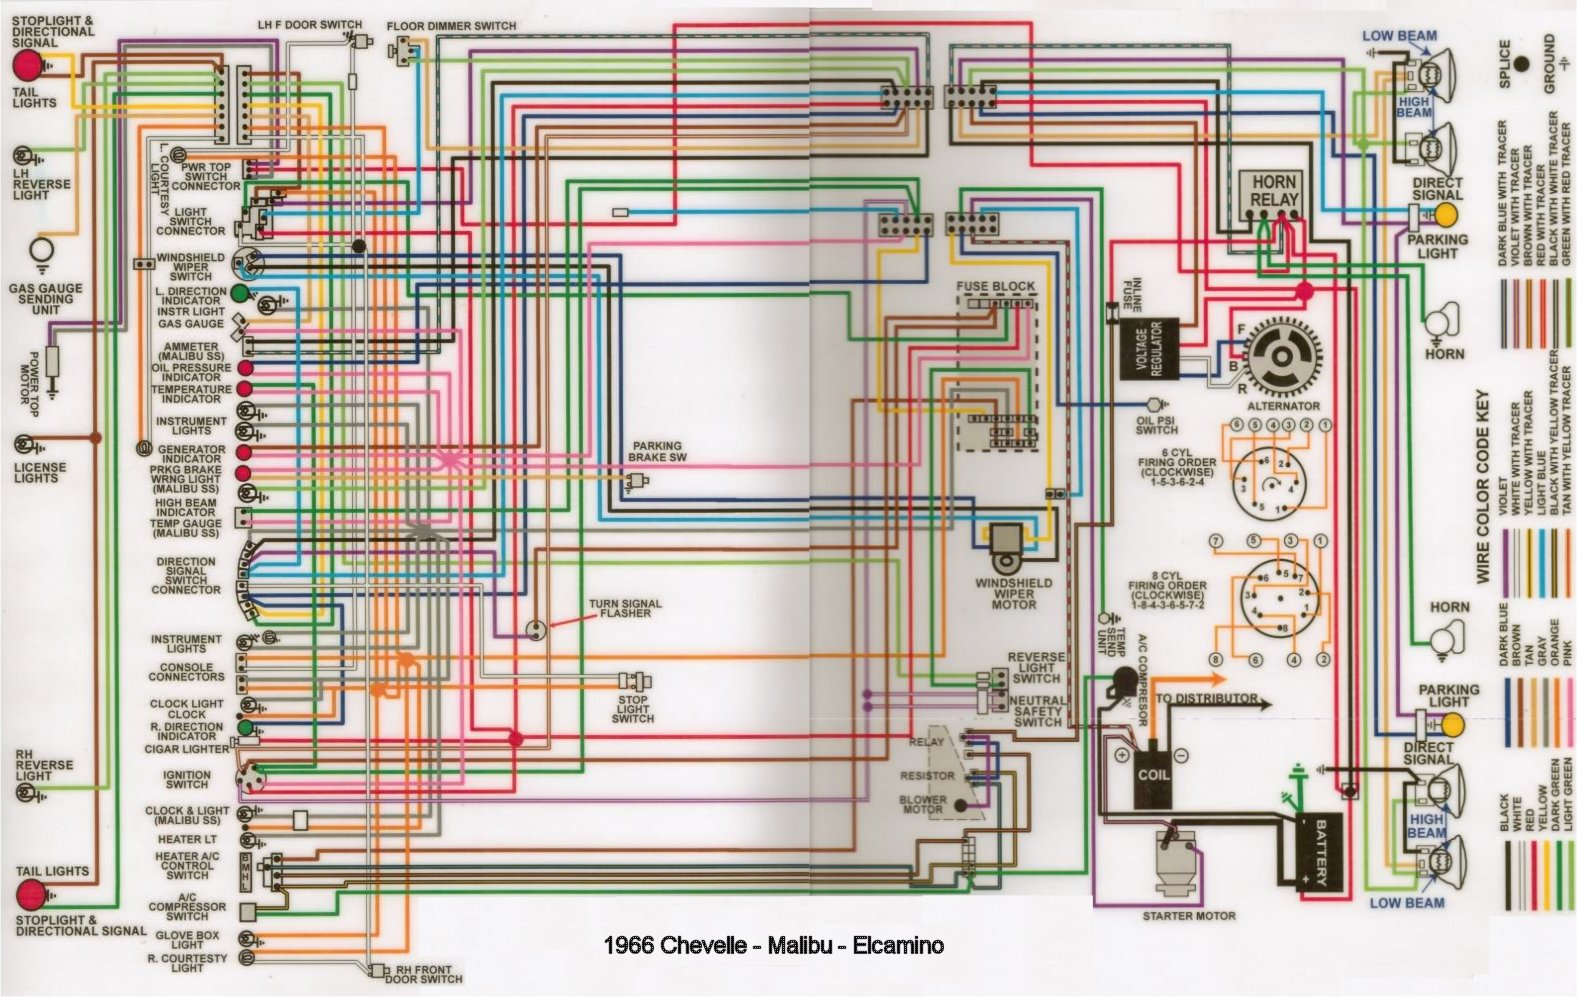 hight resolution of 1966 impala convertible wiring diagram wiring diagram today